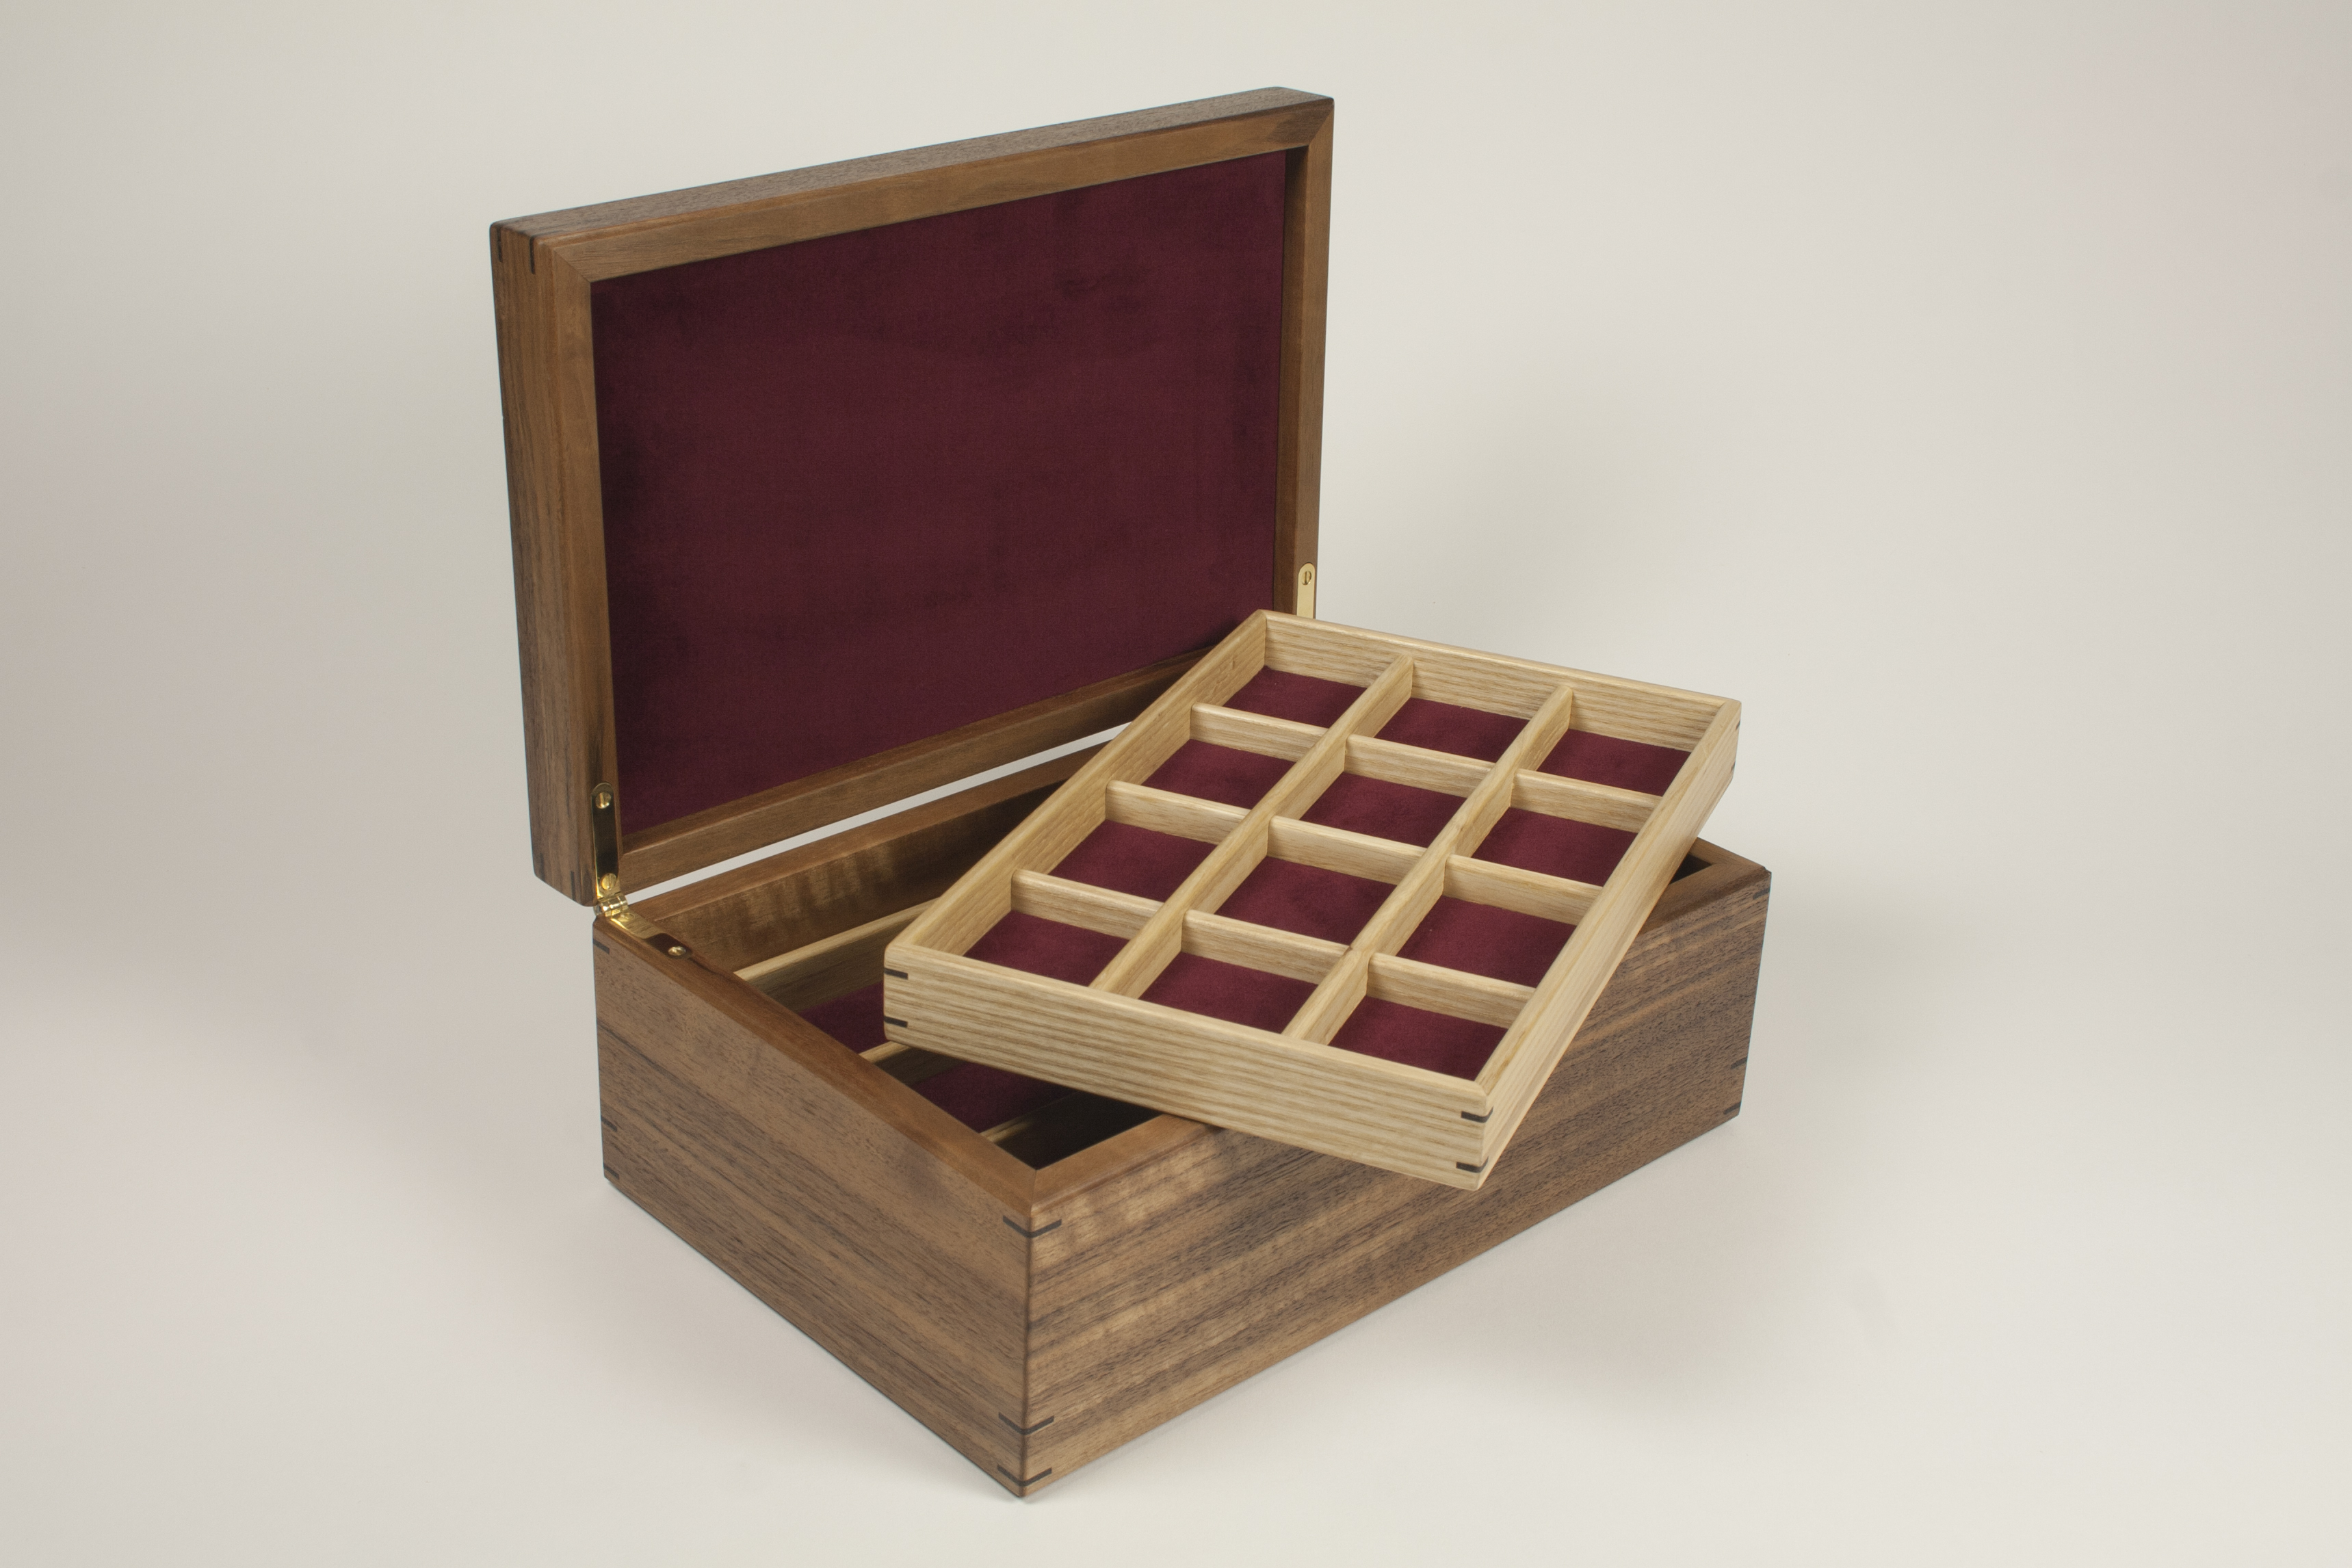 Jewellery box with first tray on top